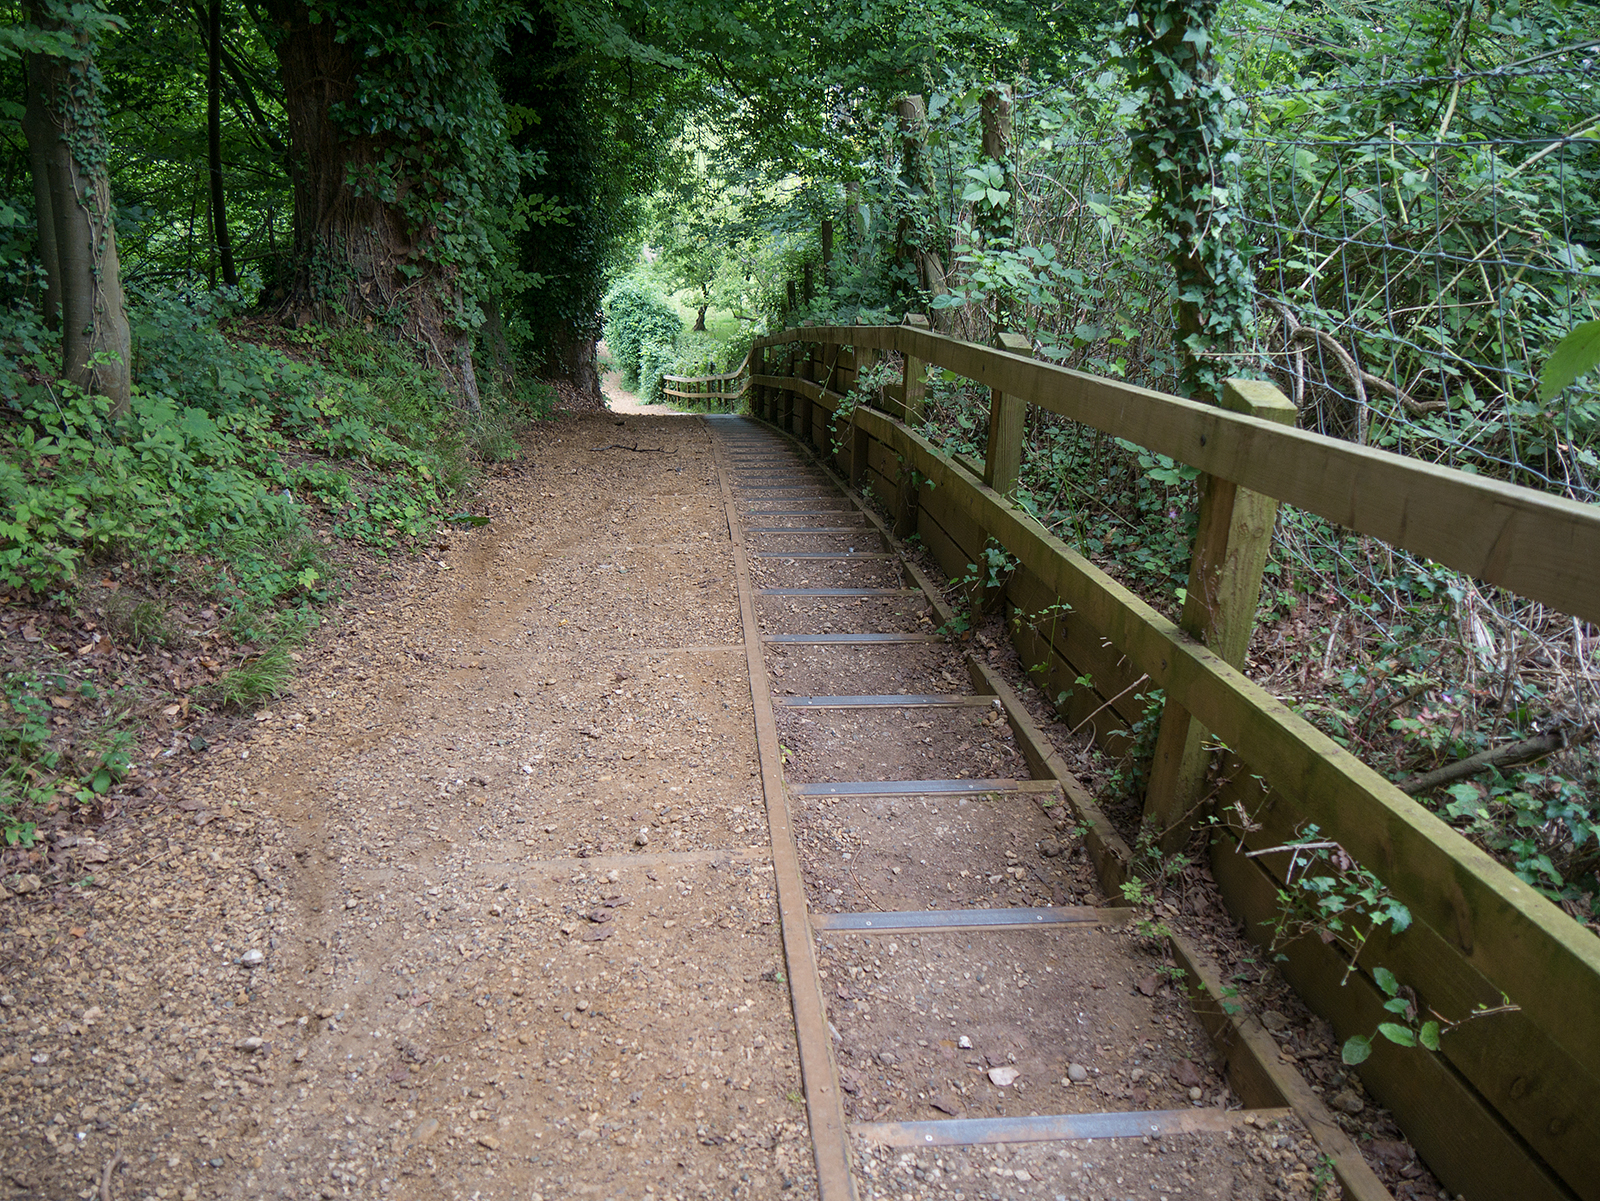 Steep slope downwards has newly added steps for safety